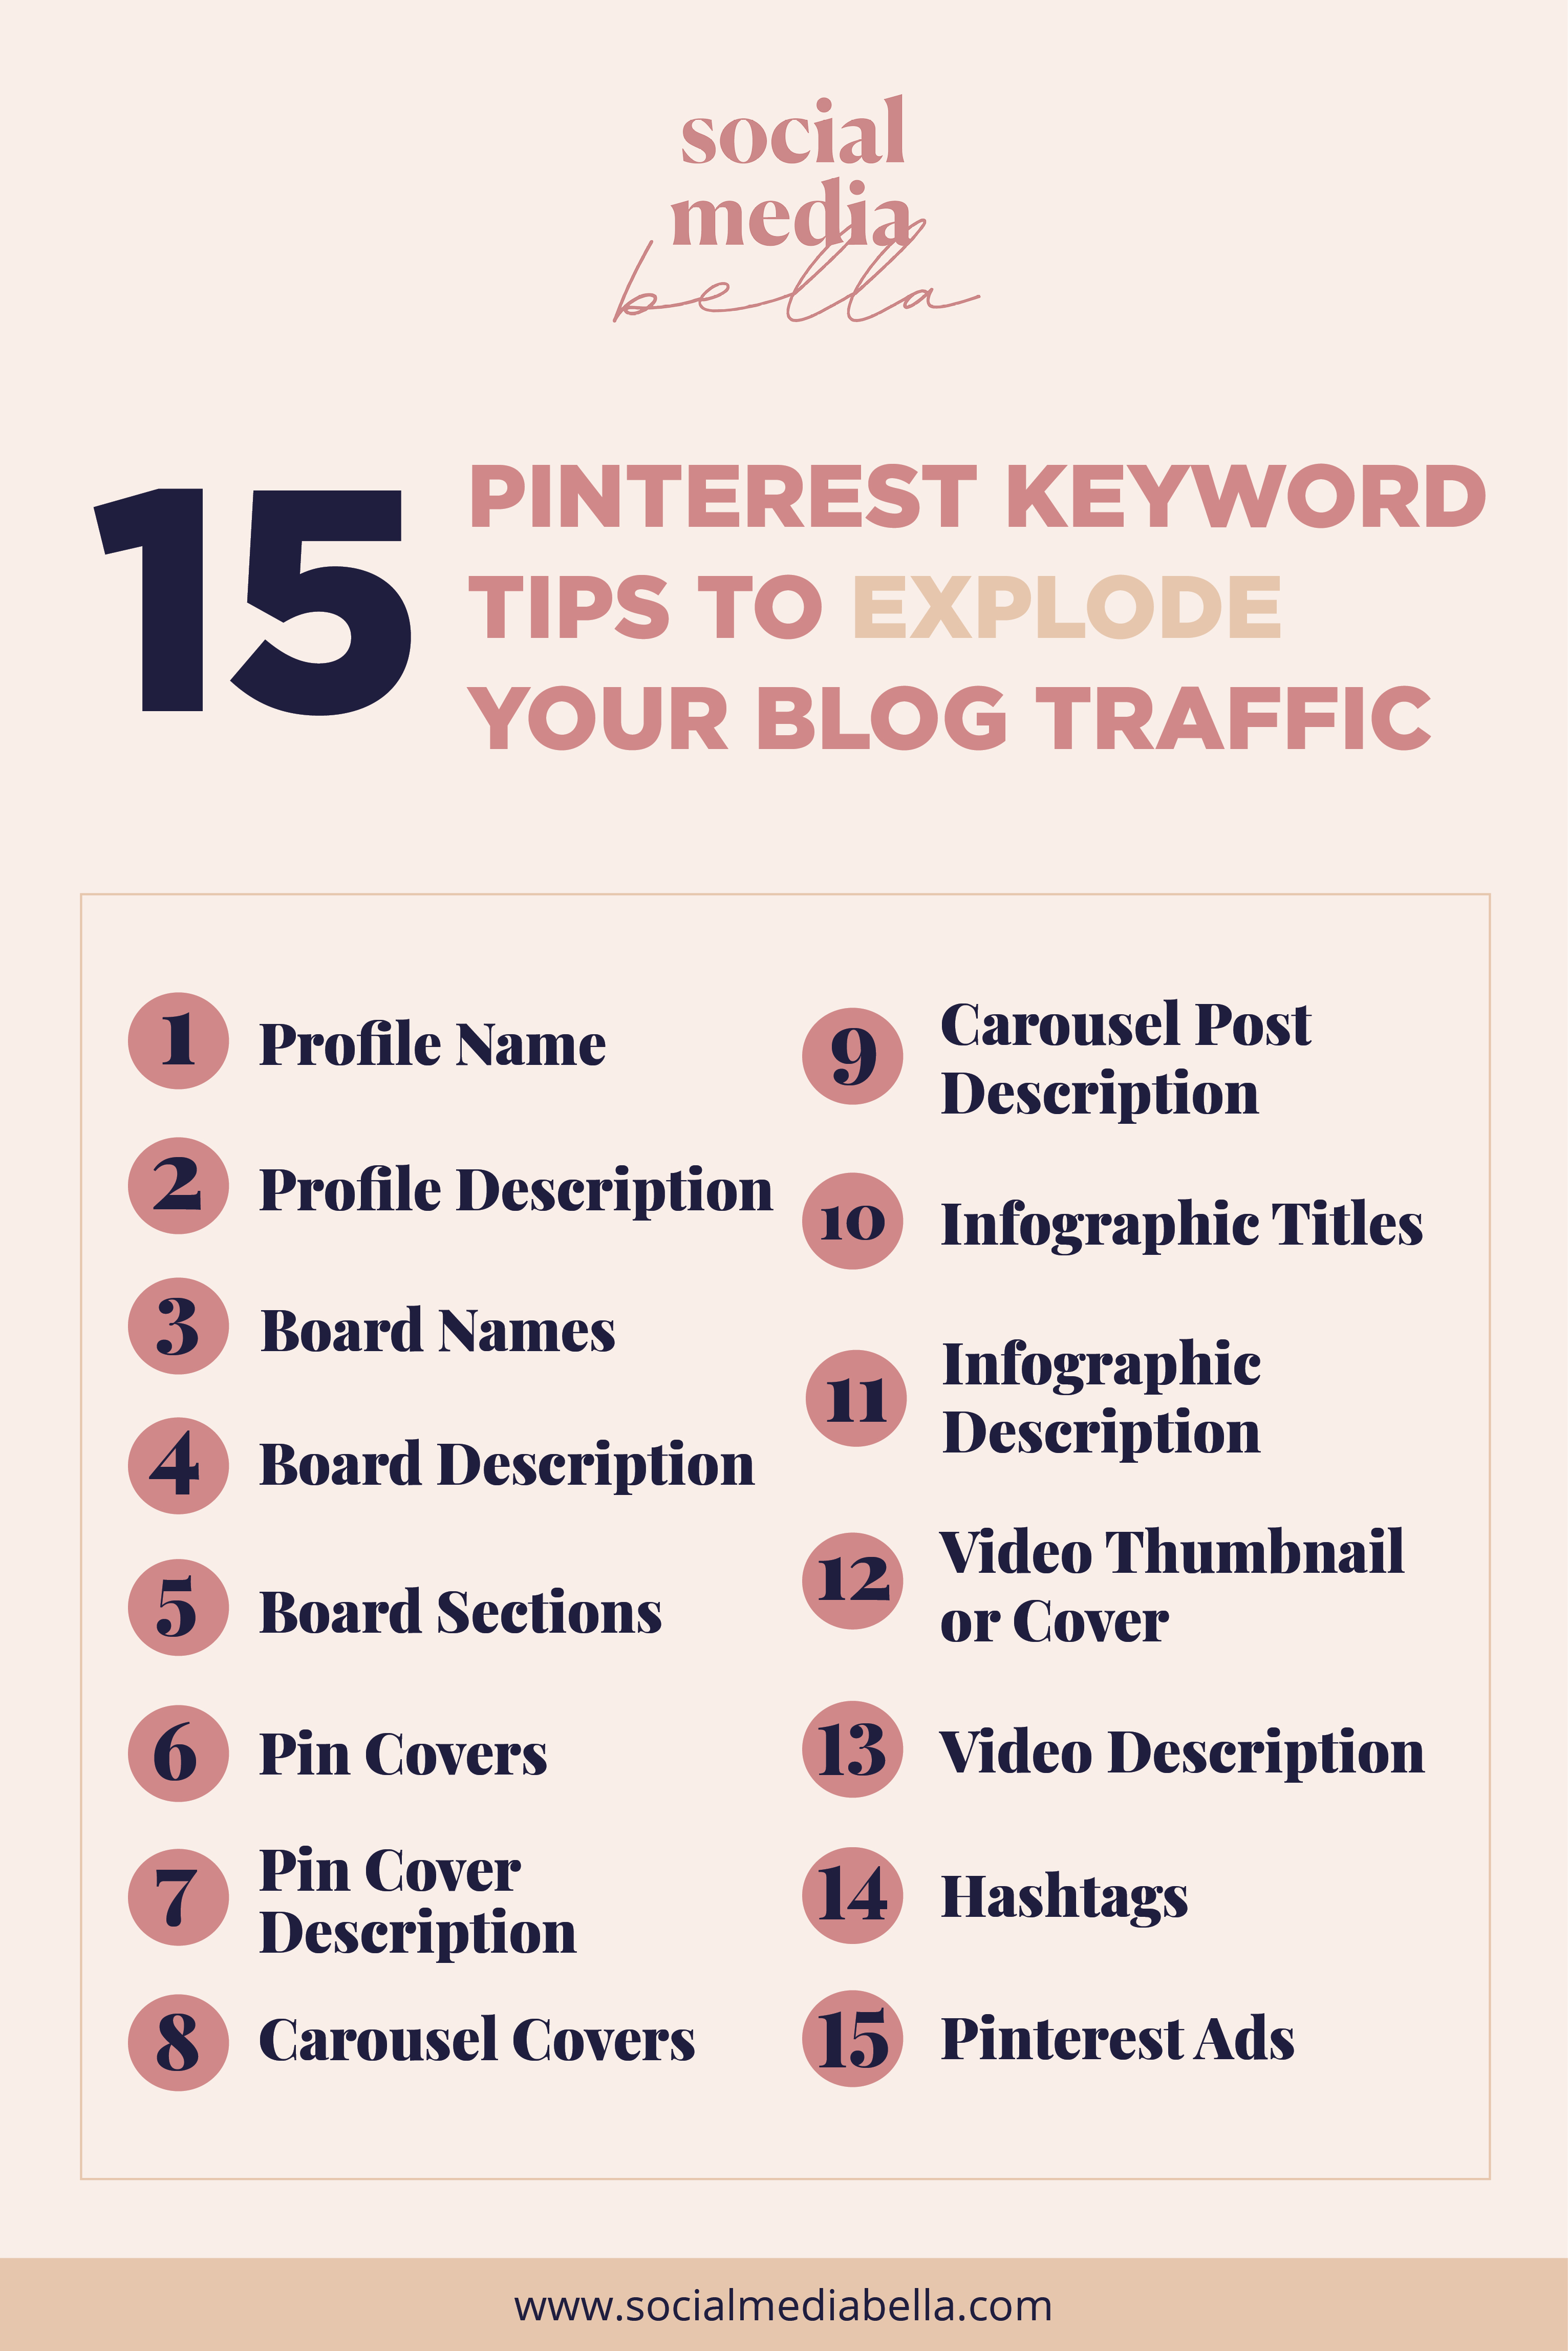 Pinterest marketing tips for ecommerce businesses